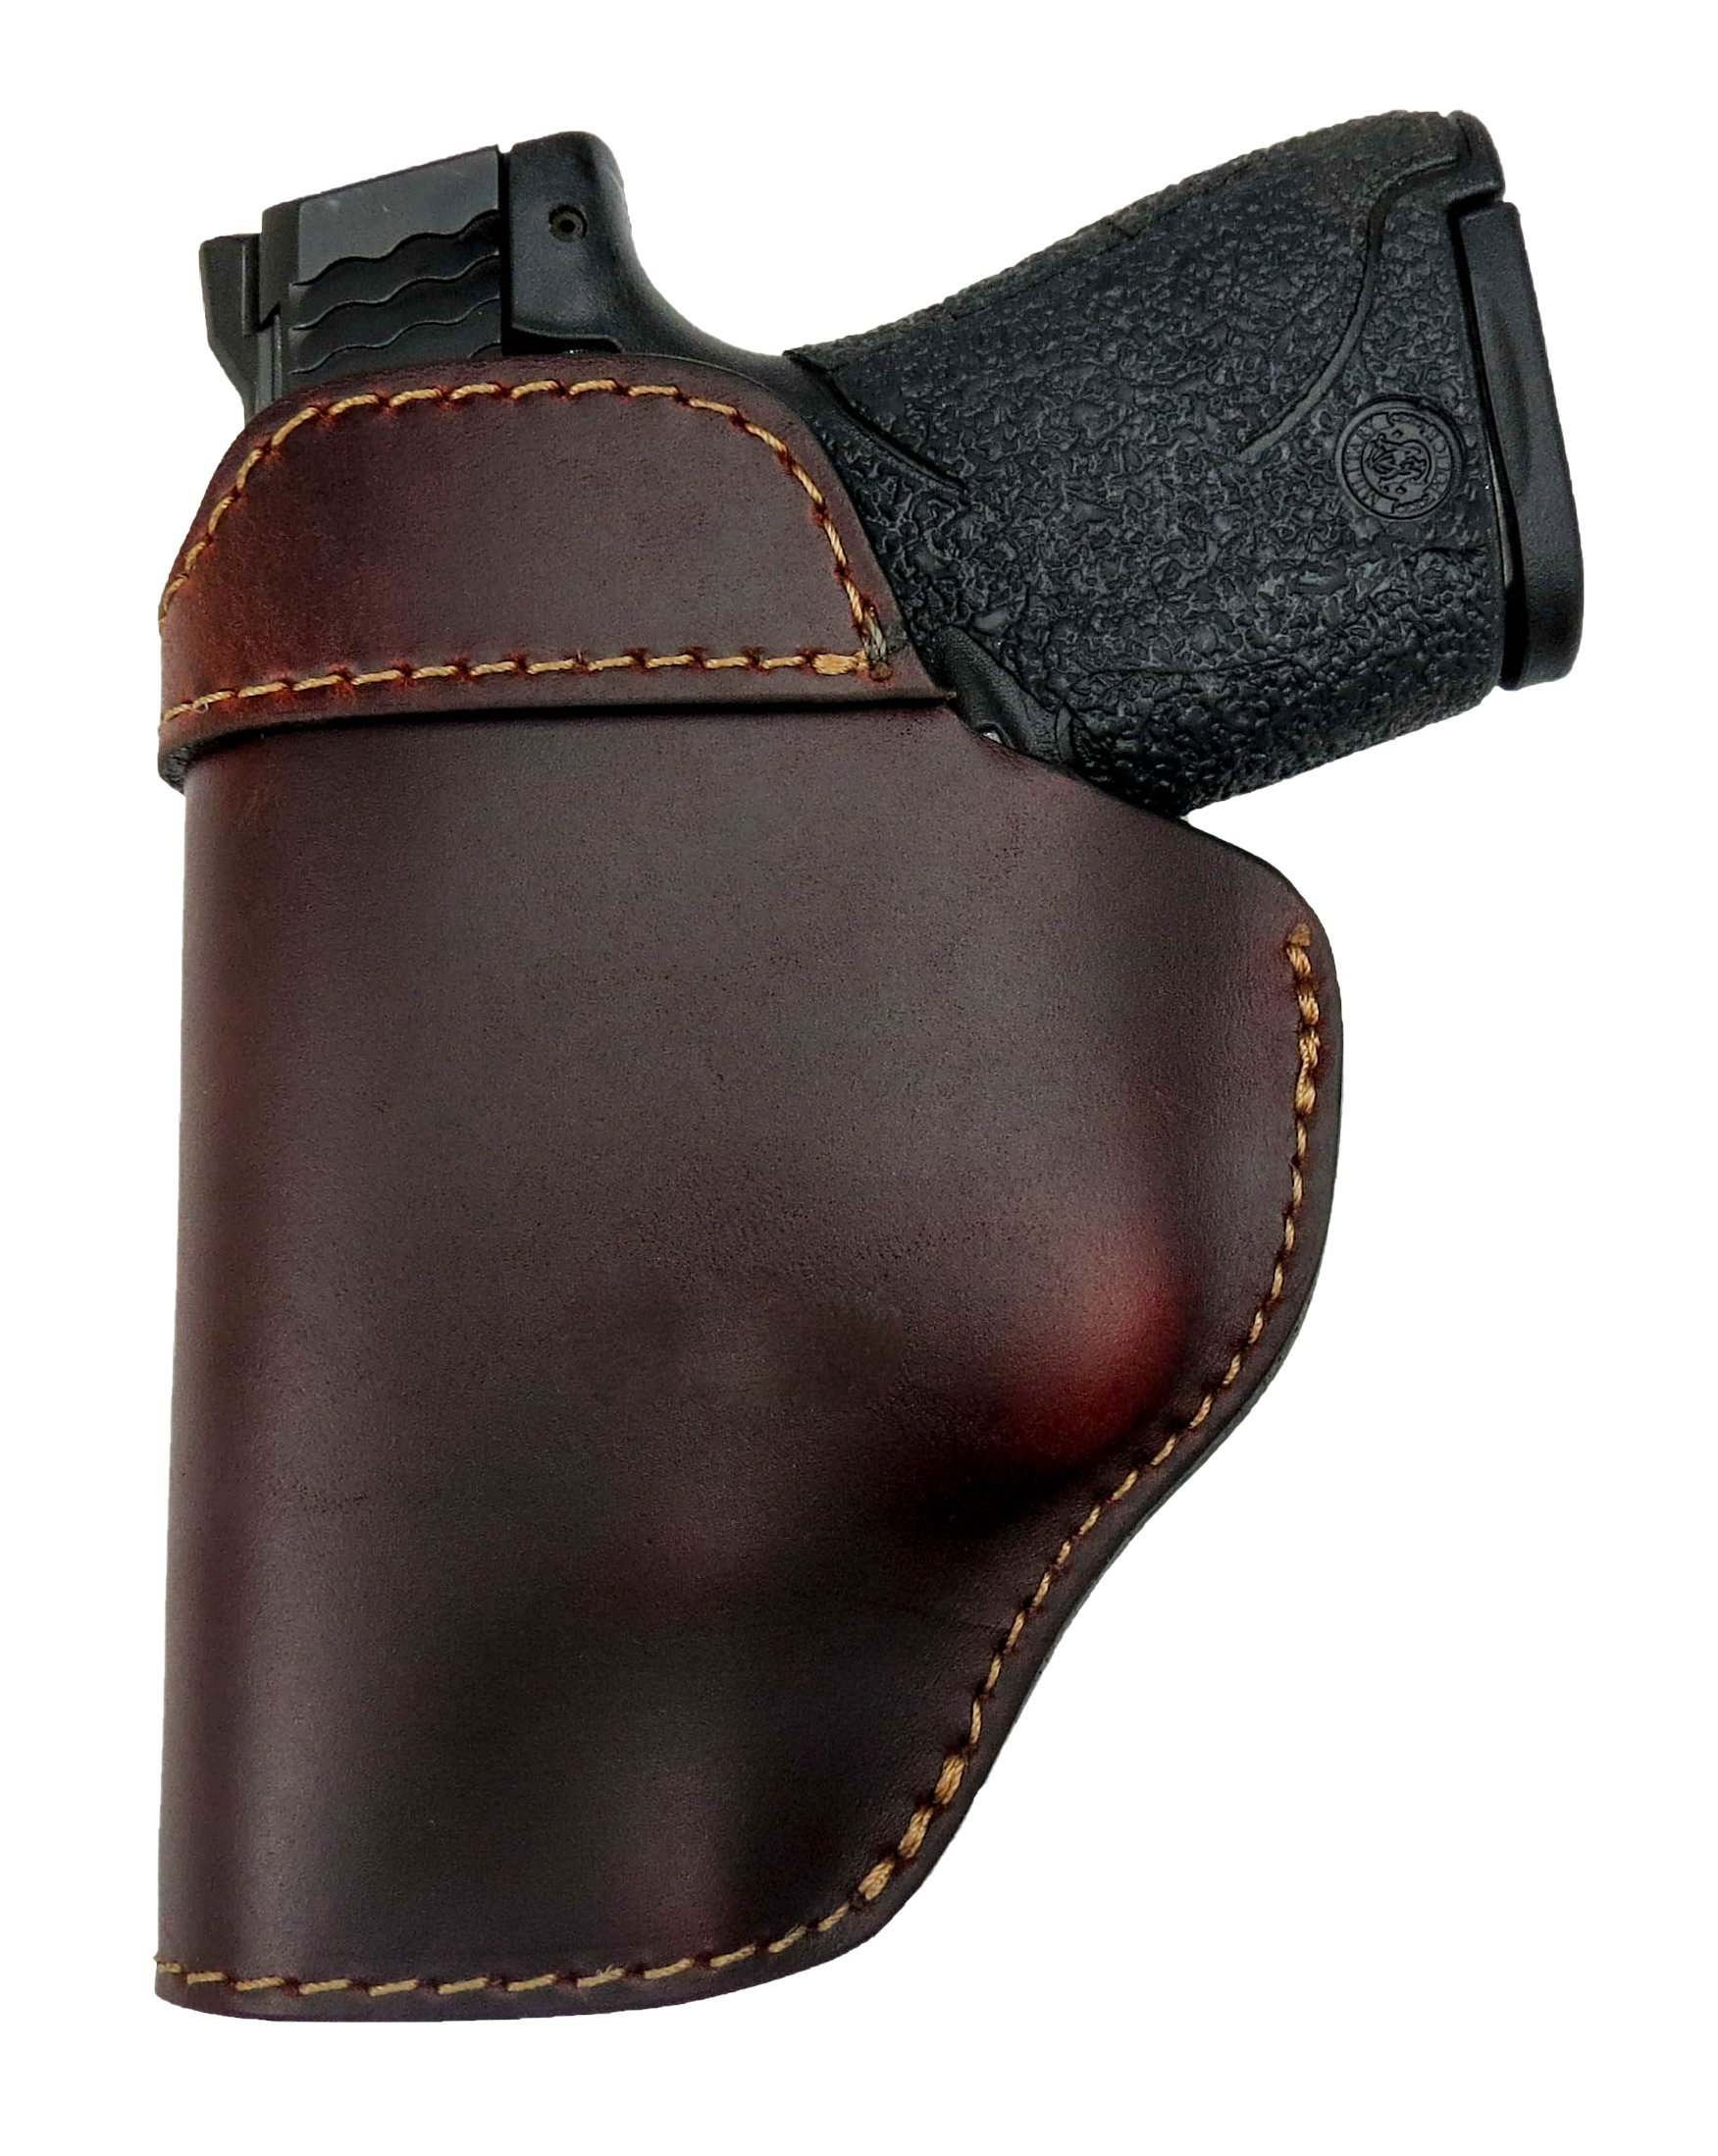 Relentless Tactical The Defender Leather IWB Holster - Made in USA - For S&W M&P Shield - GLOCK 17 19 22 23 32 33/Springfield XD & XDS/Plus All Similar Sized Handguns – Brown – Right Handed by Relentless Tactical (Image #4)